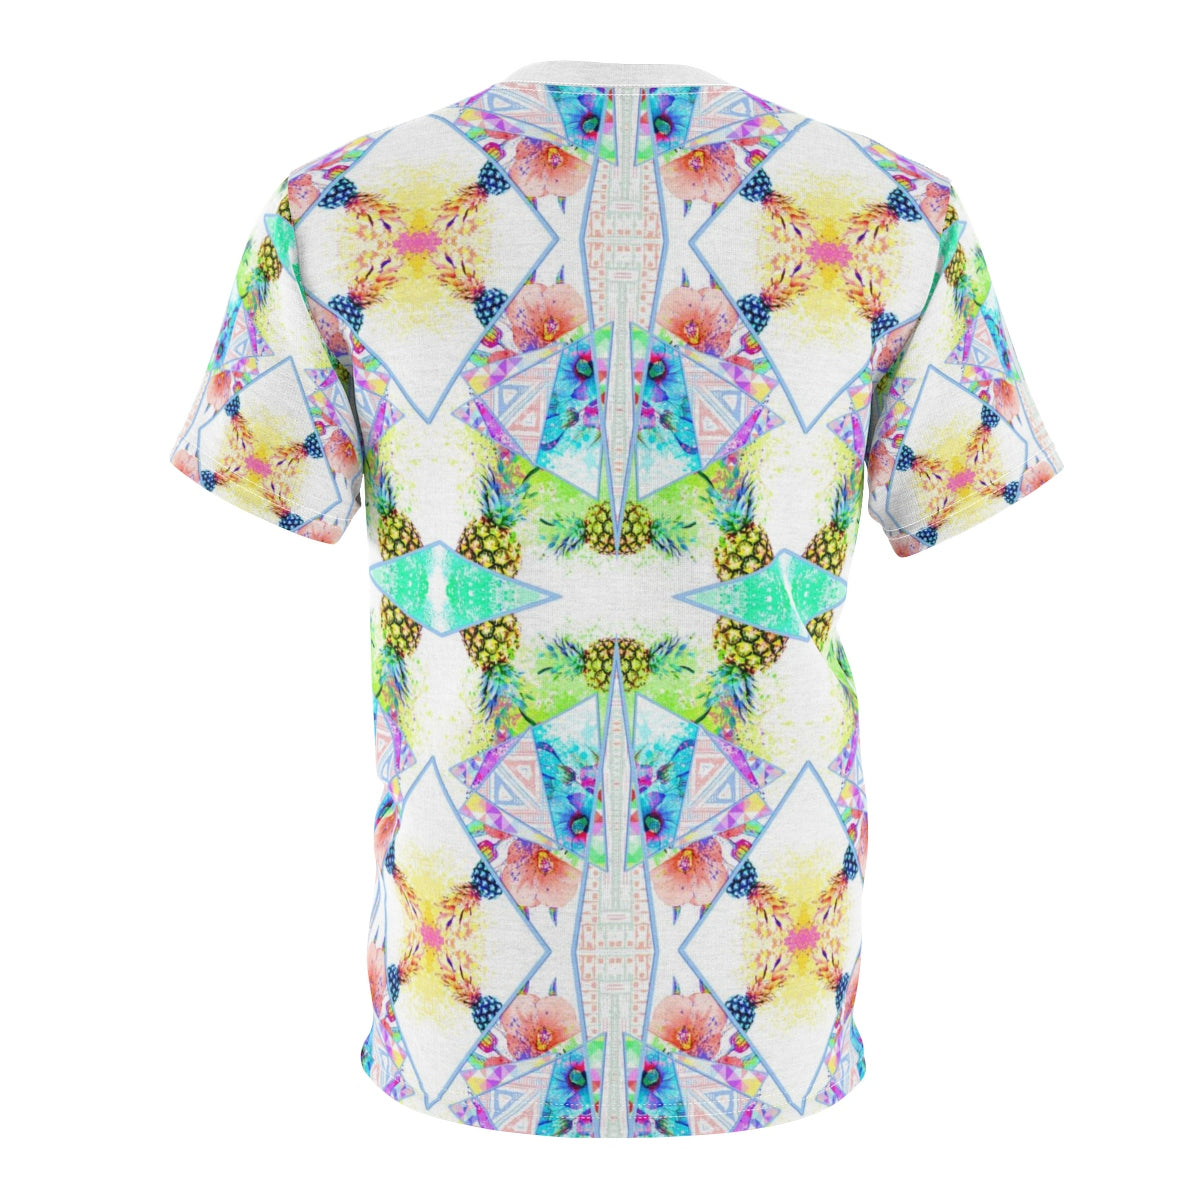 Fiji Islands #0011 (T-shirt)